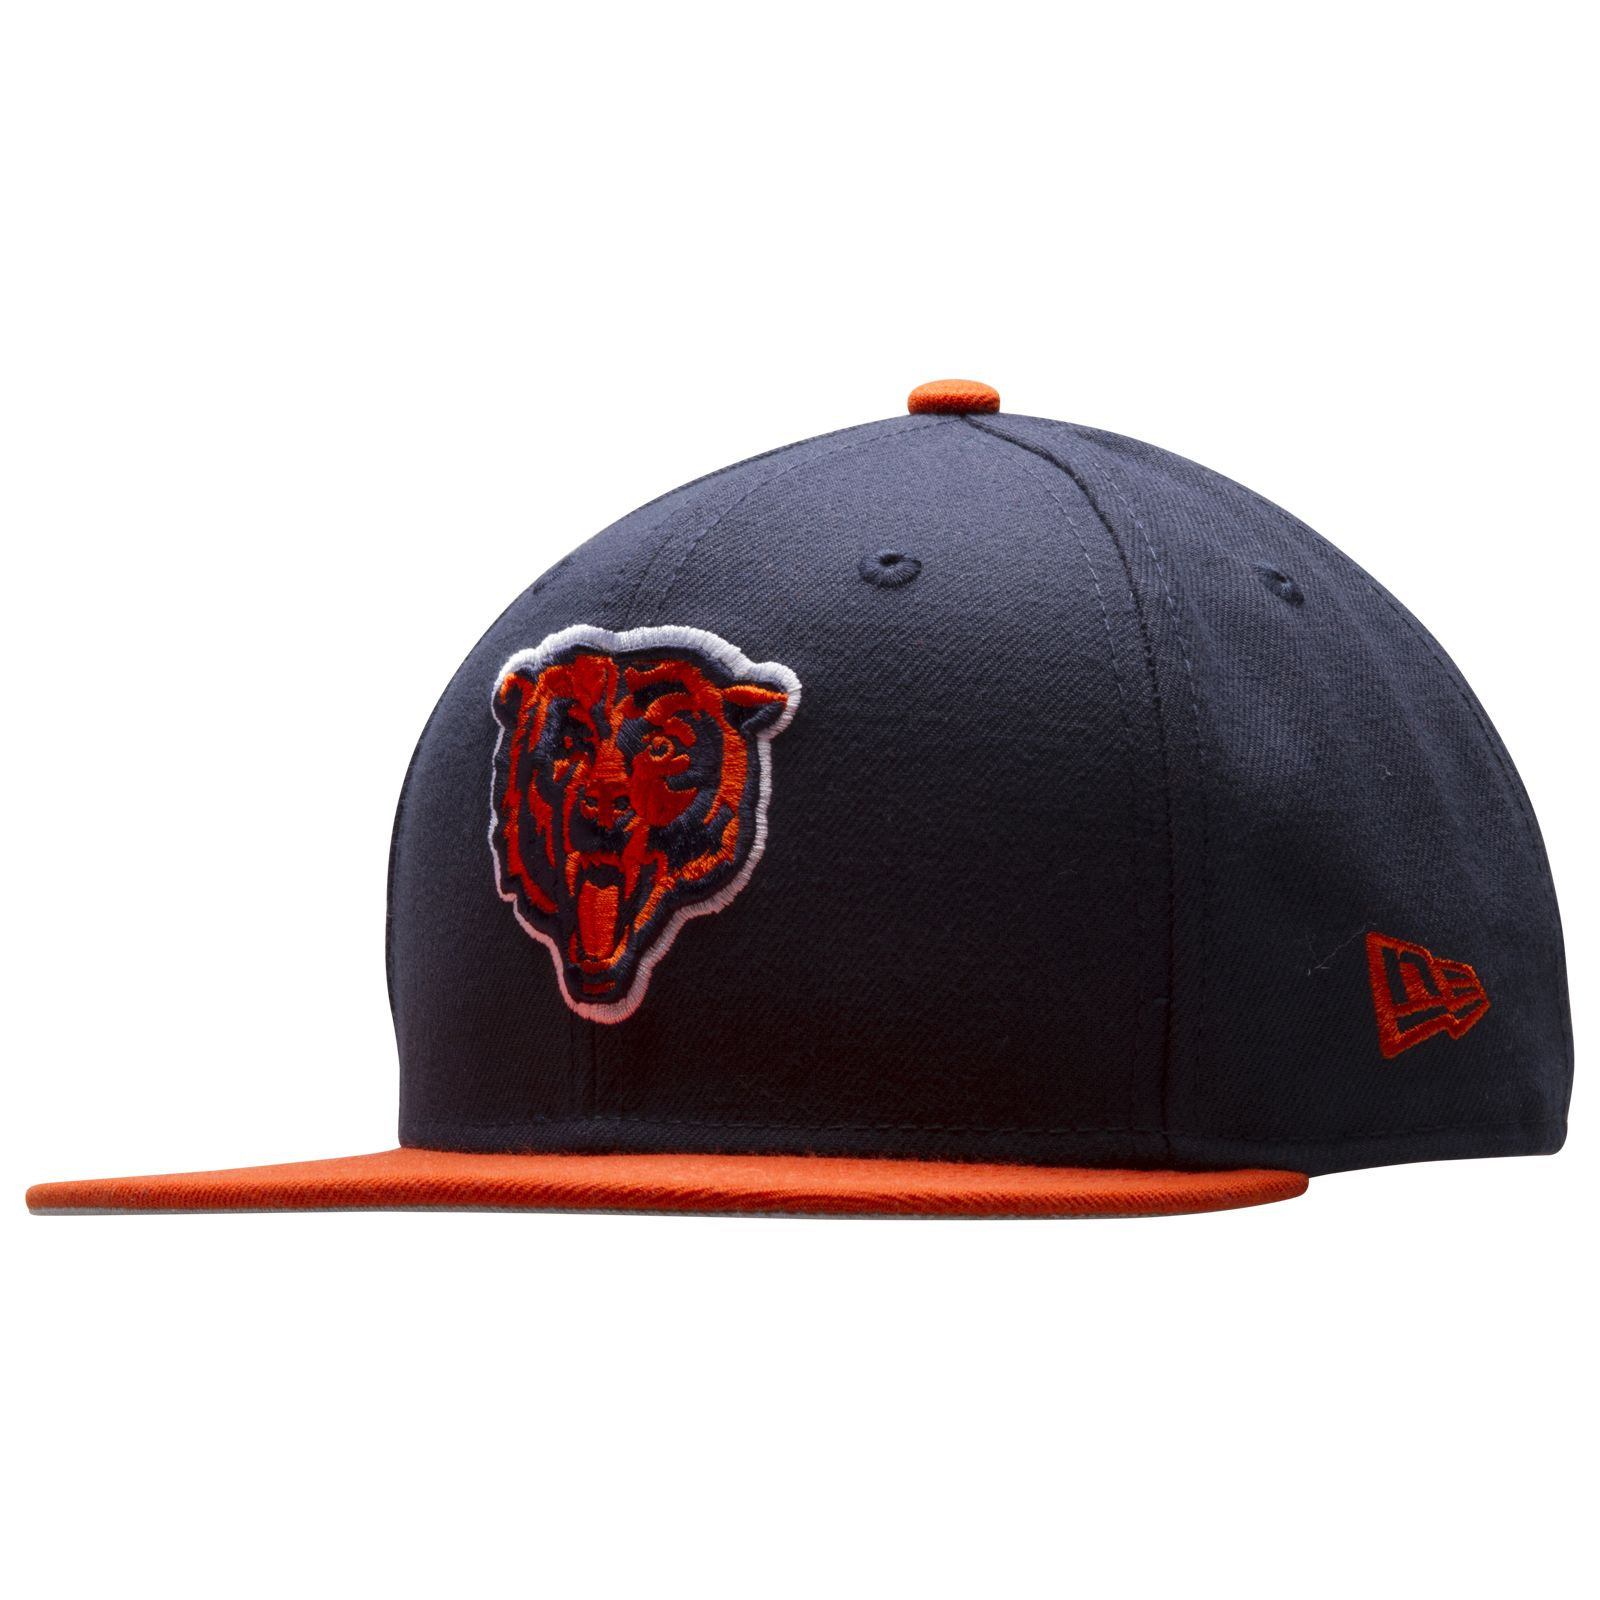 Chicago Bears Navy and Orange Angry Bear Face Logo Snapback Hat by New Era   Chicago  Bears  ChicagoBears ed253965d0b7